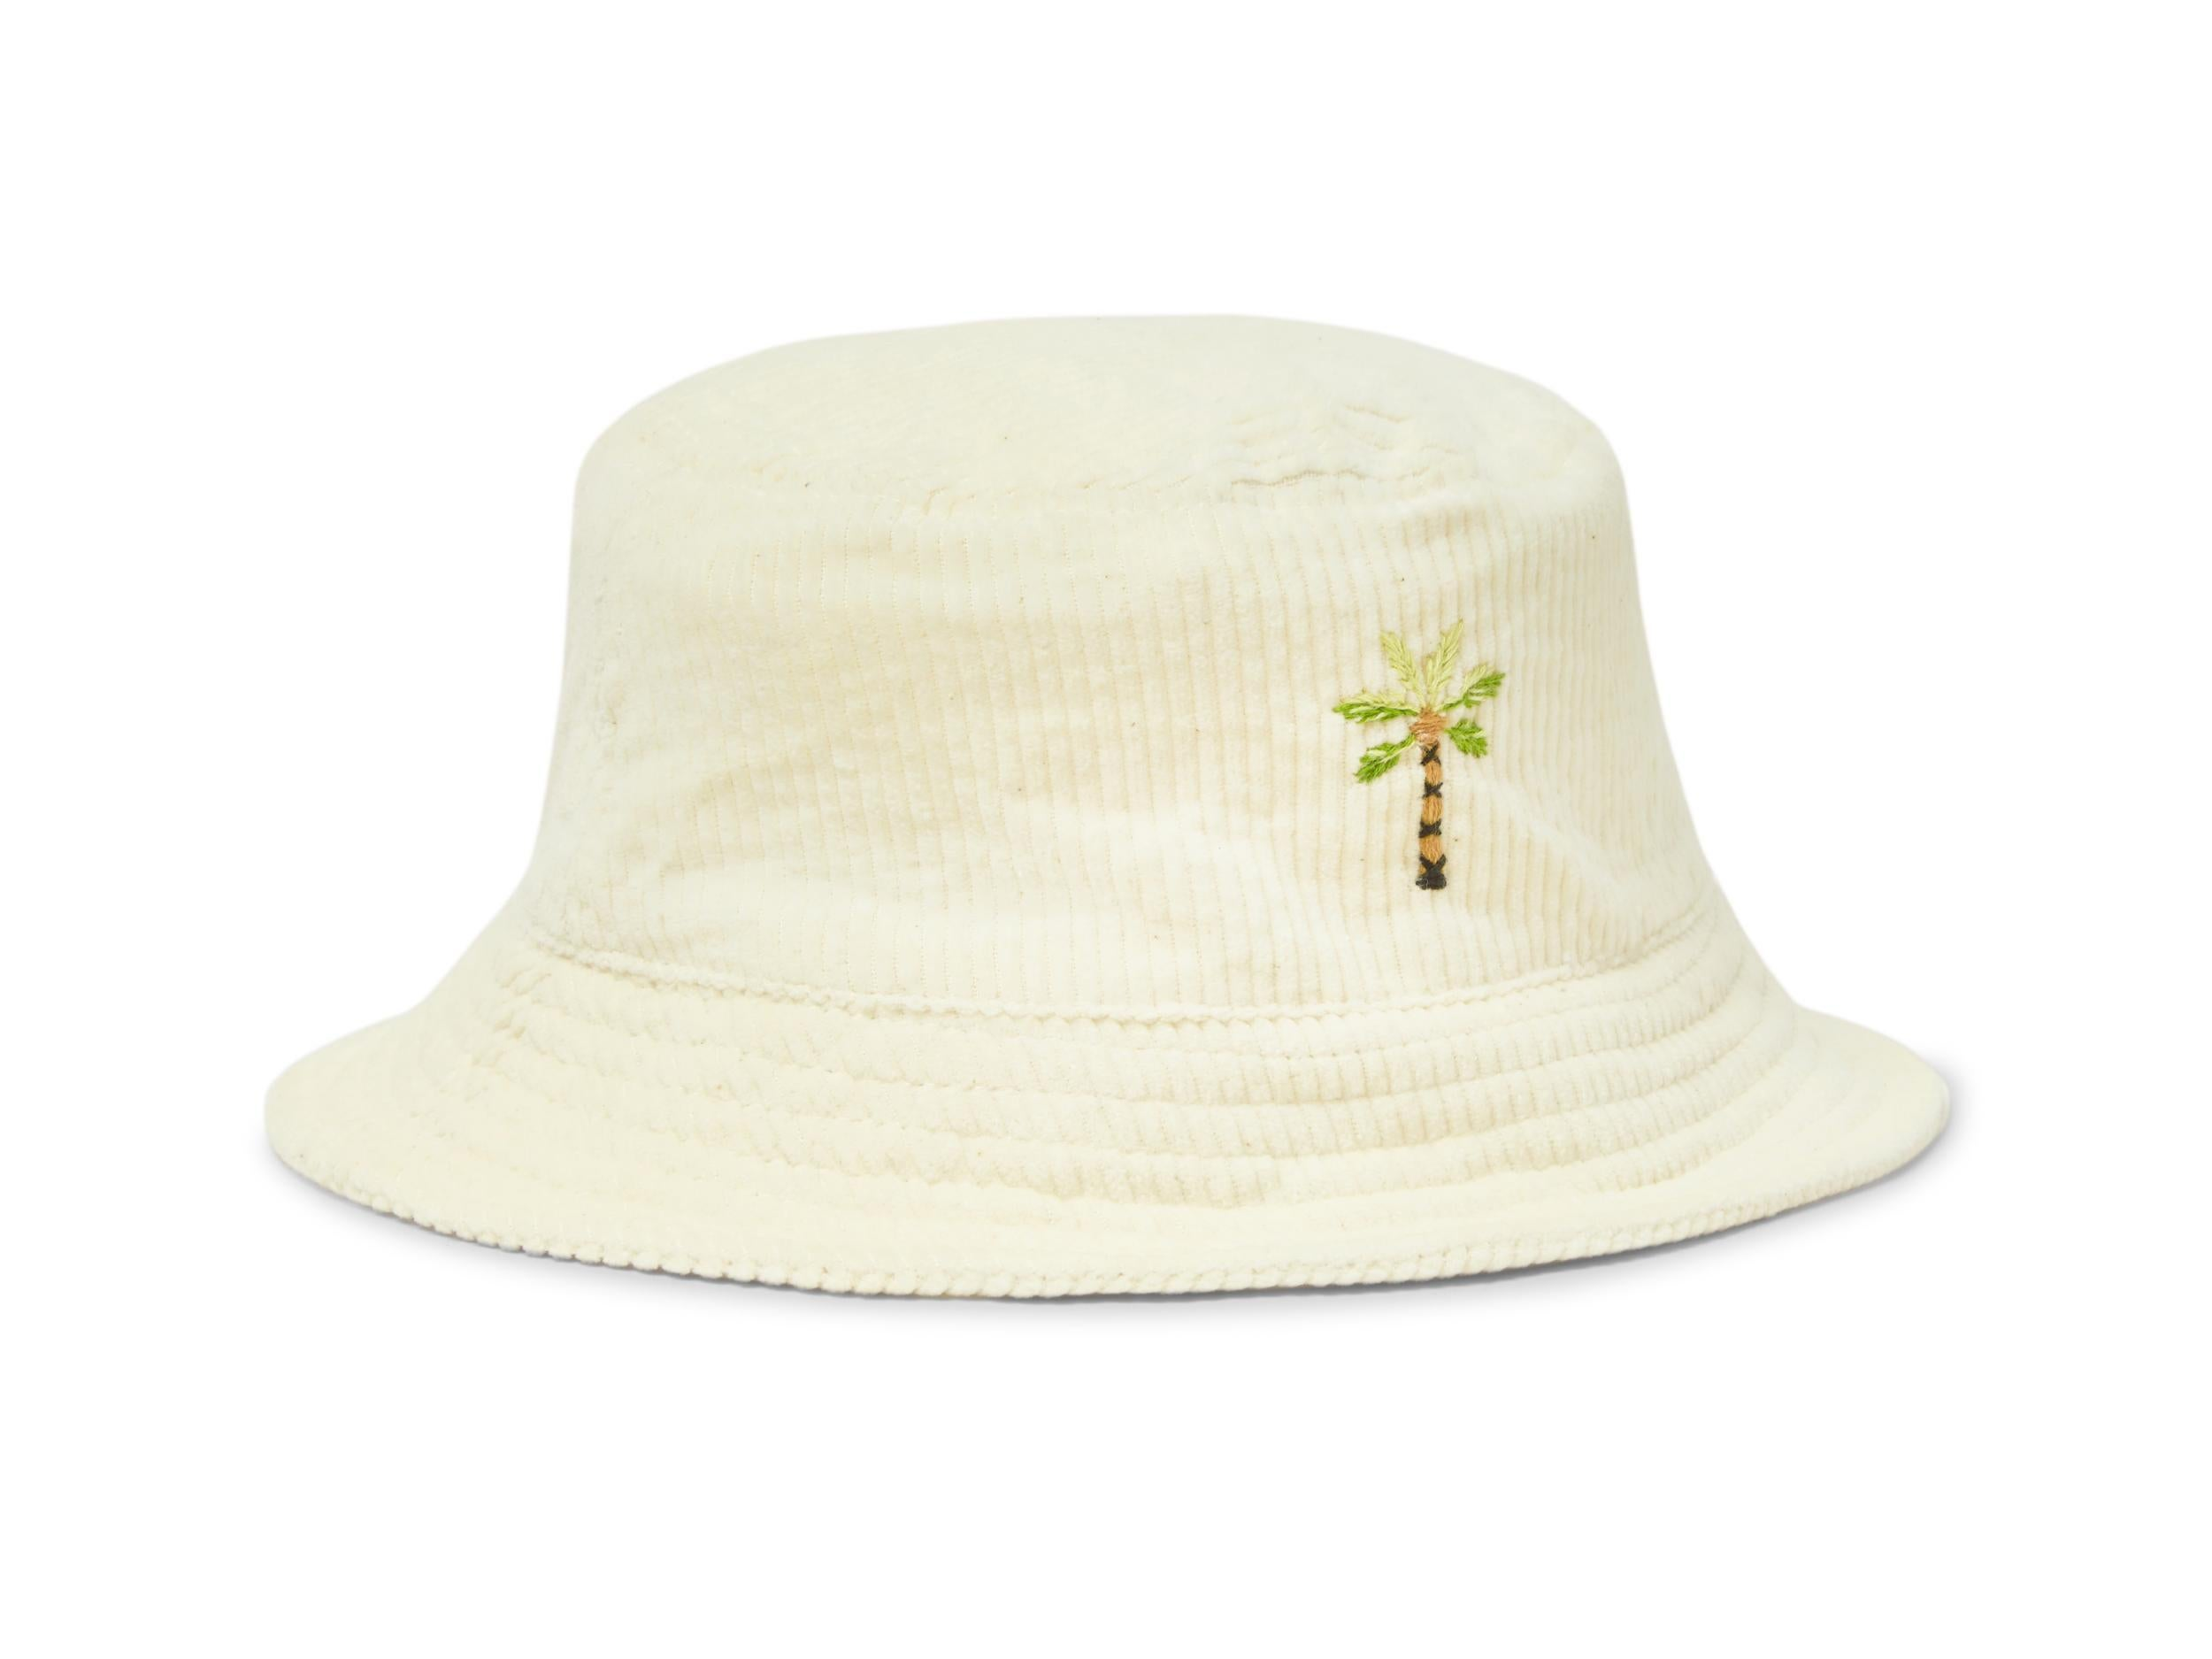 e0c7b5c8a1903 Best men's summer hats: Caps, bucket hats and fedoras that are ...